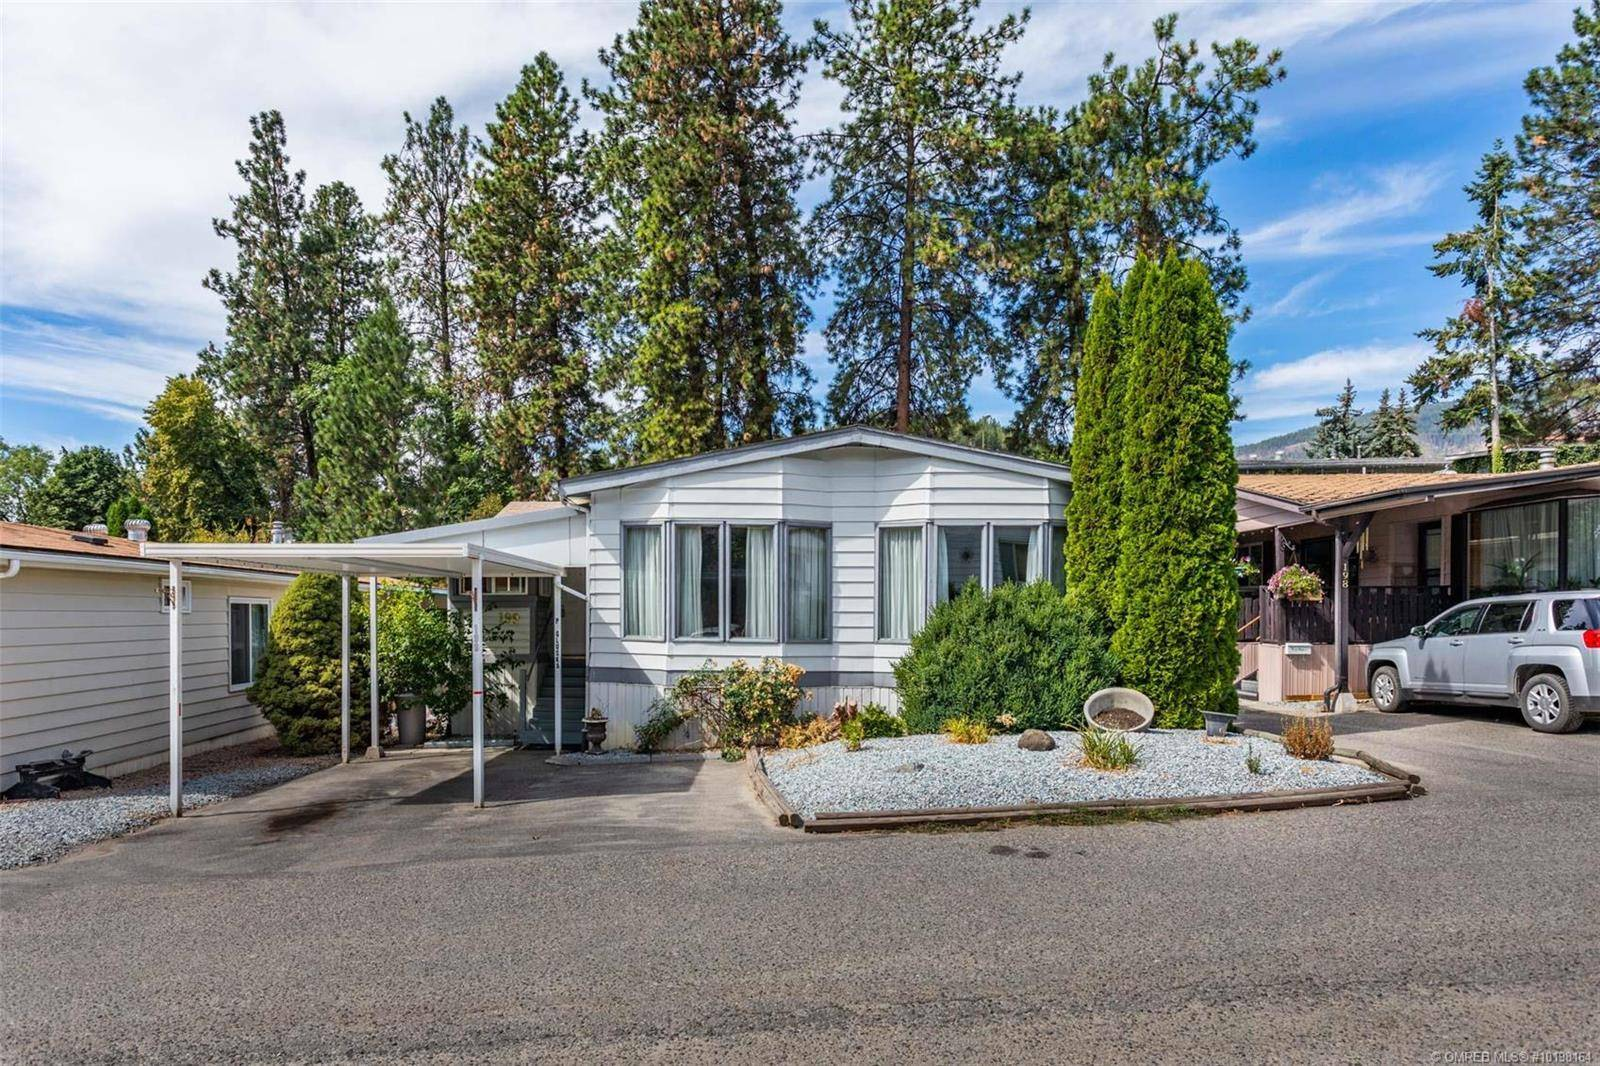 Residential property for sale at 1999 Highway 97 S Hy Unit 97 West Kelowna British Columbia - MLS: 10198164